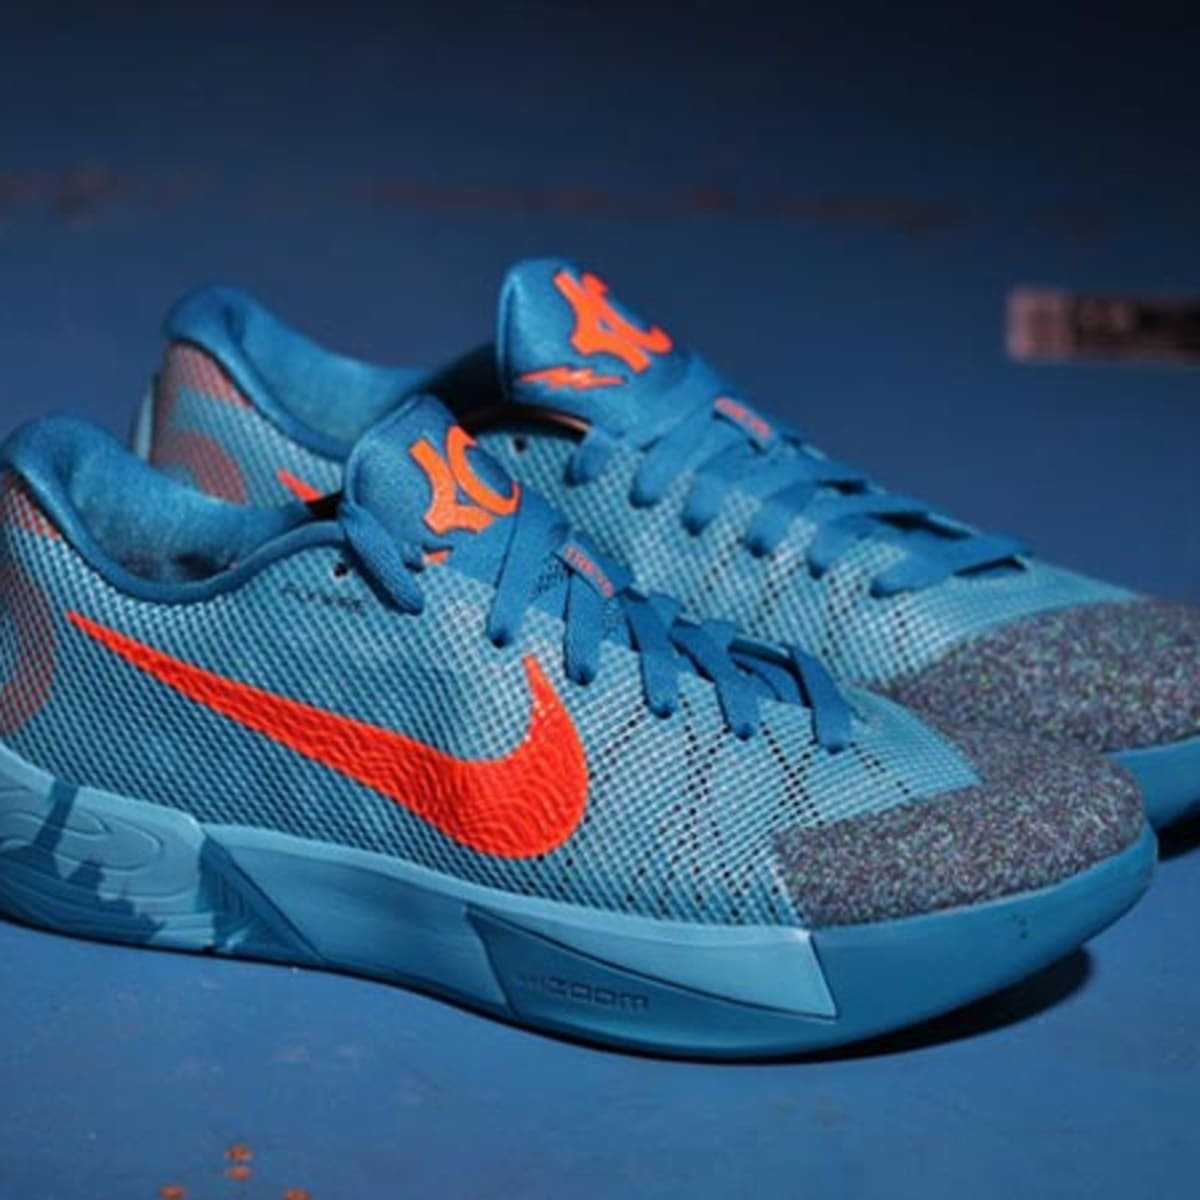 kd trey 5 ii clearwater Kevin Durant